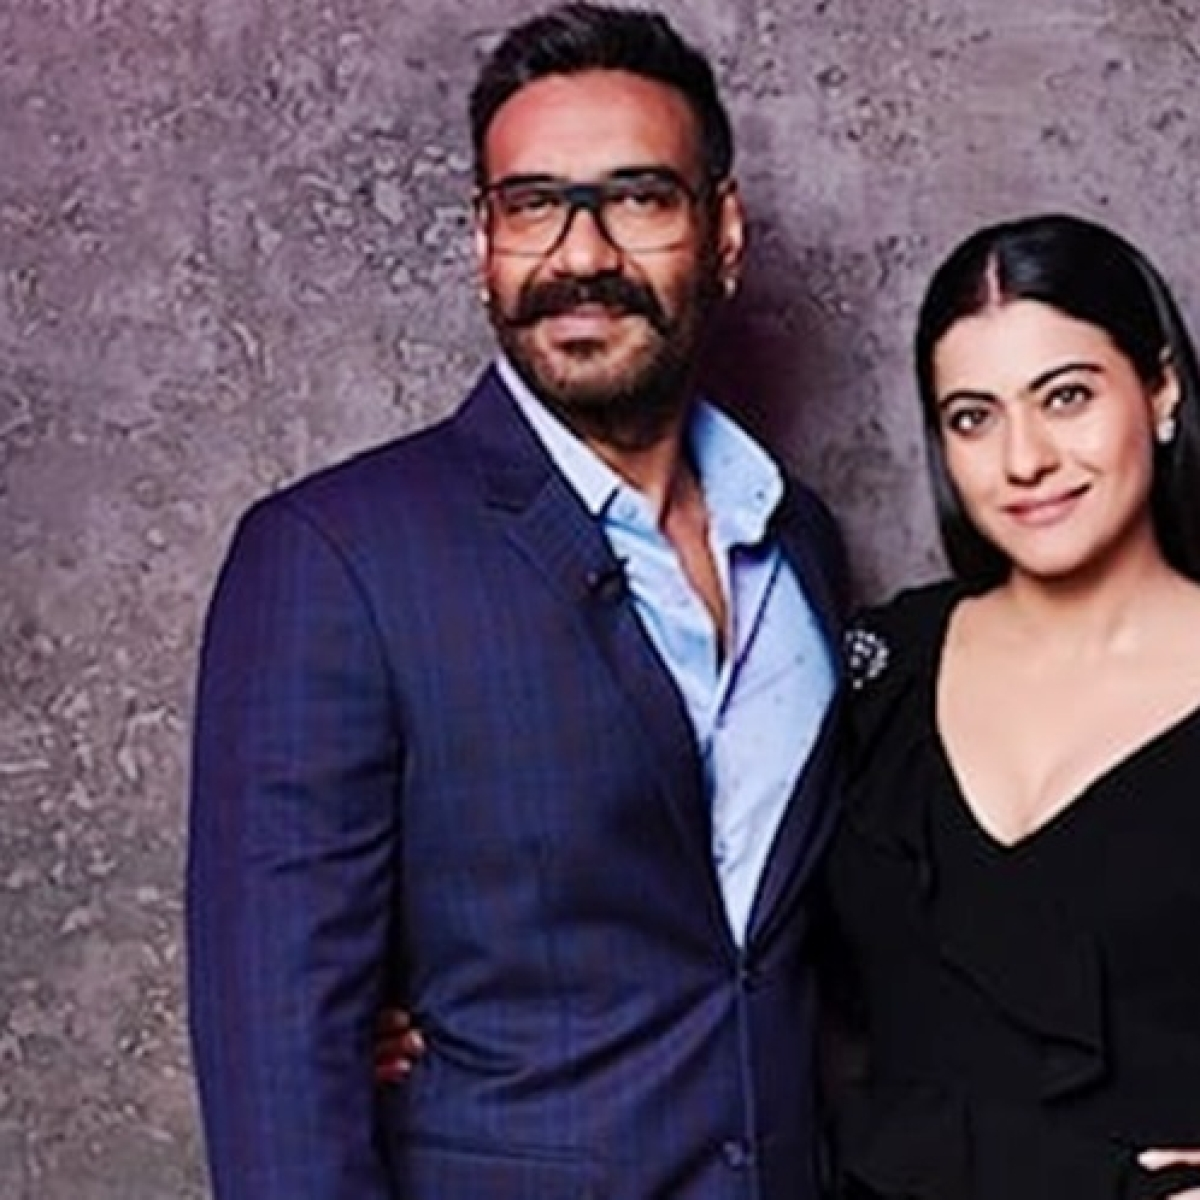 Kajol shares funny post for husband Ajay Devgn on his birthday - check out latter's sweet reply